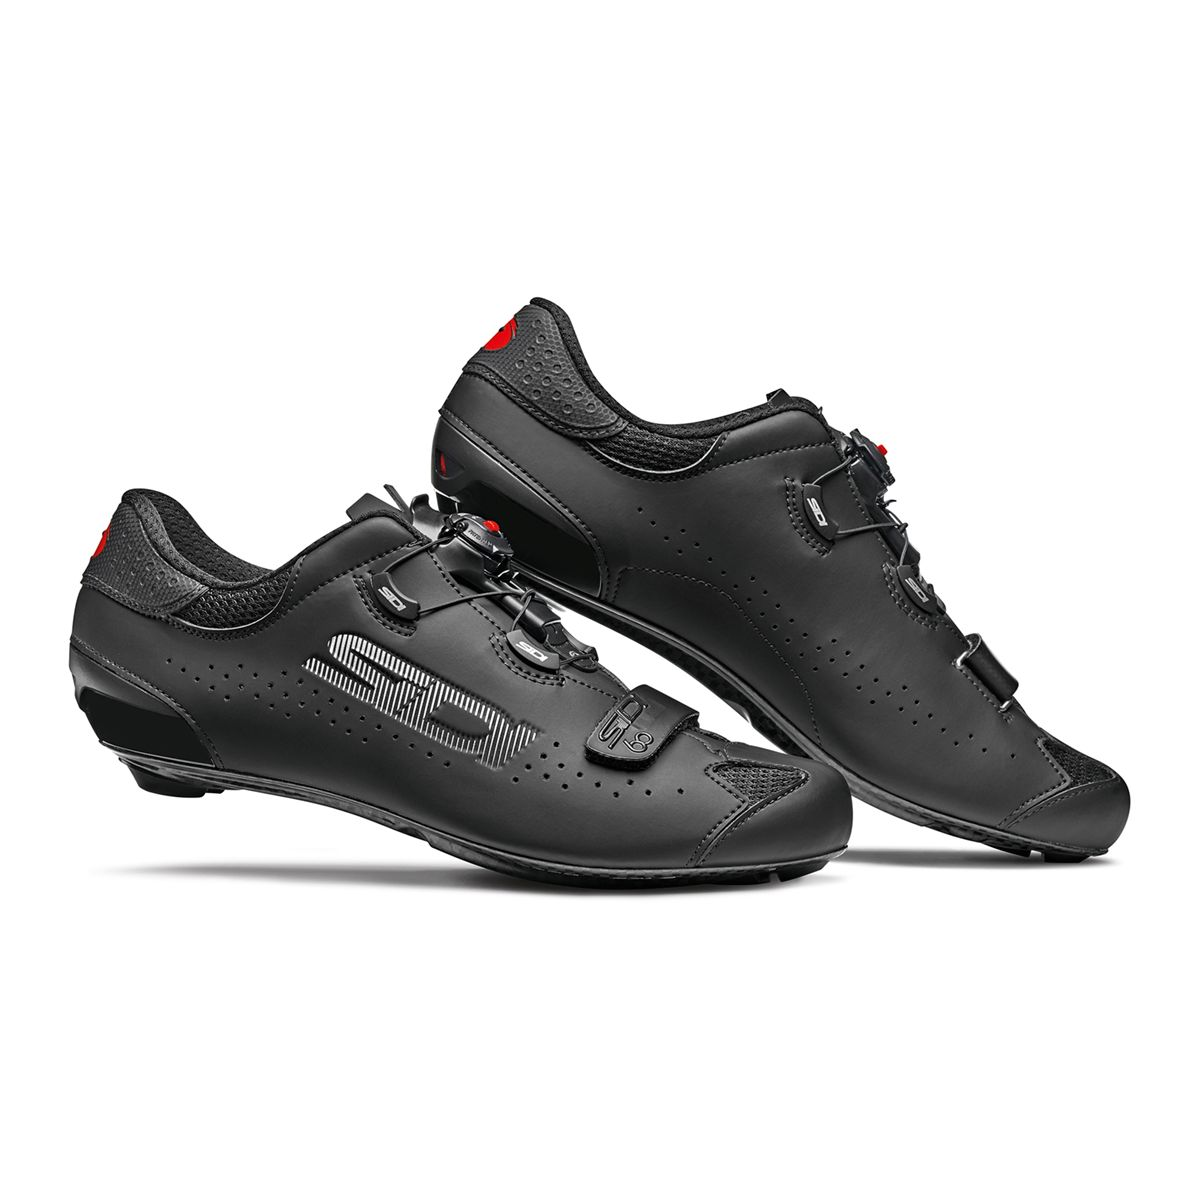 ROAD SIXTY Road Shoes